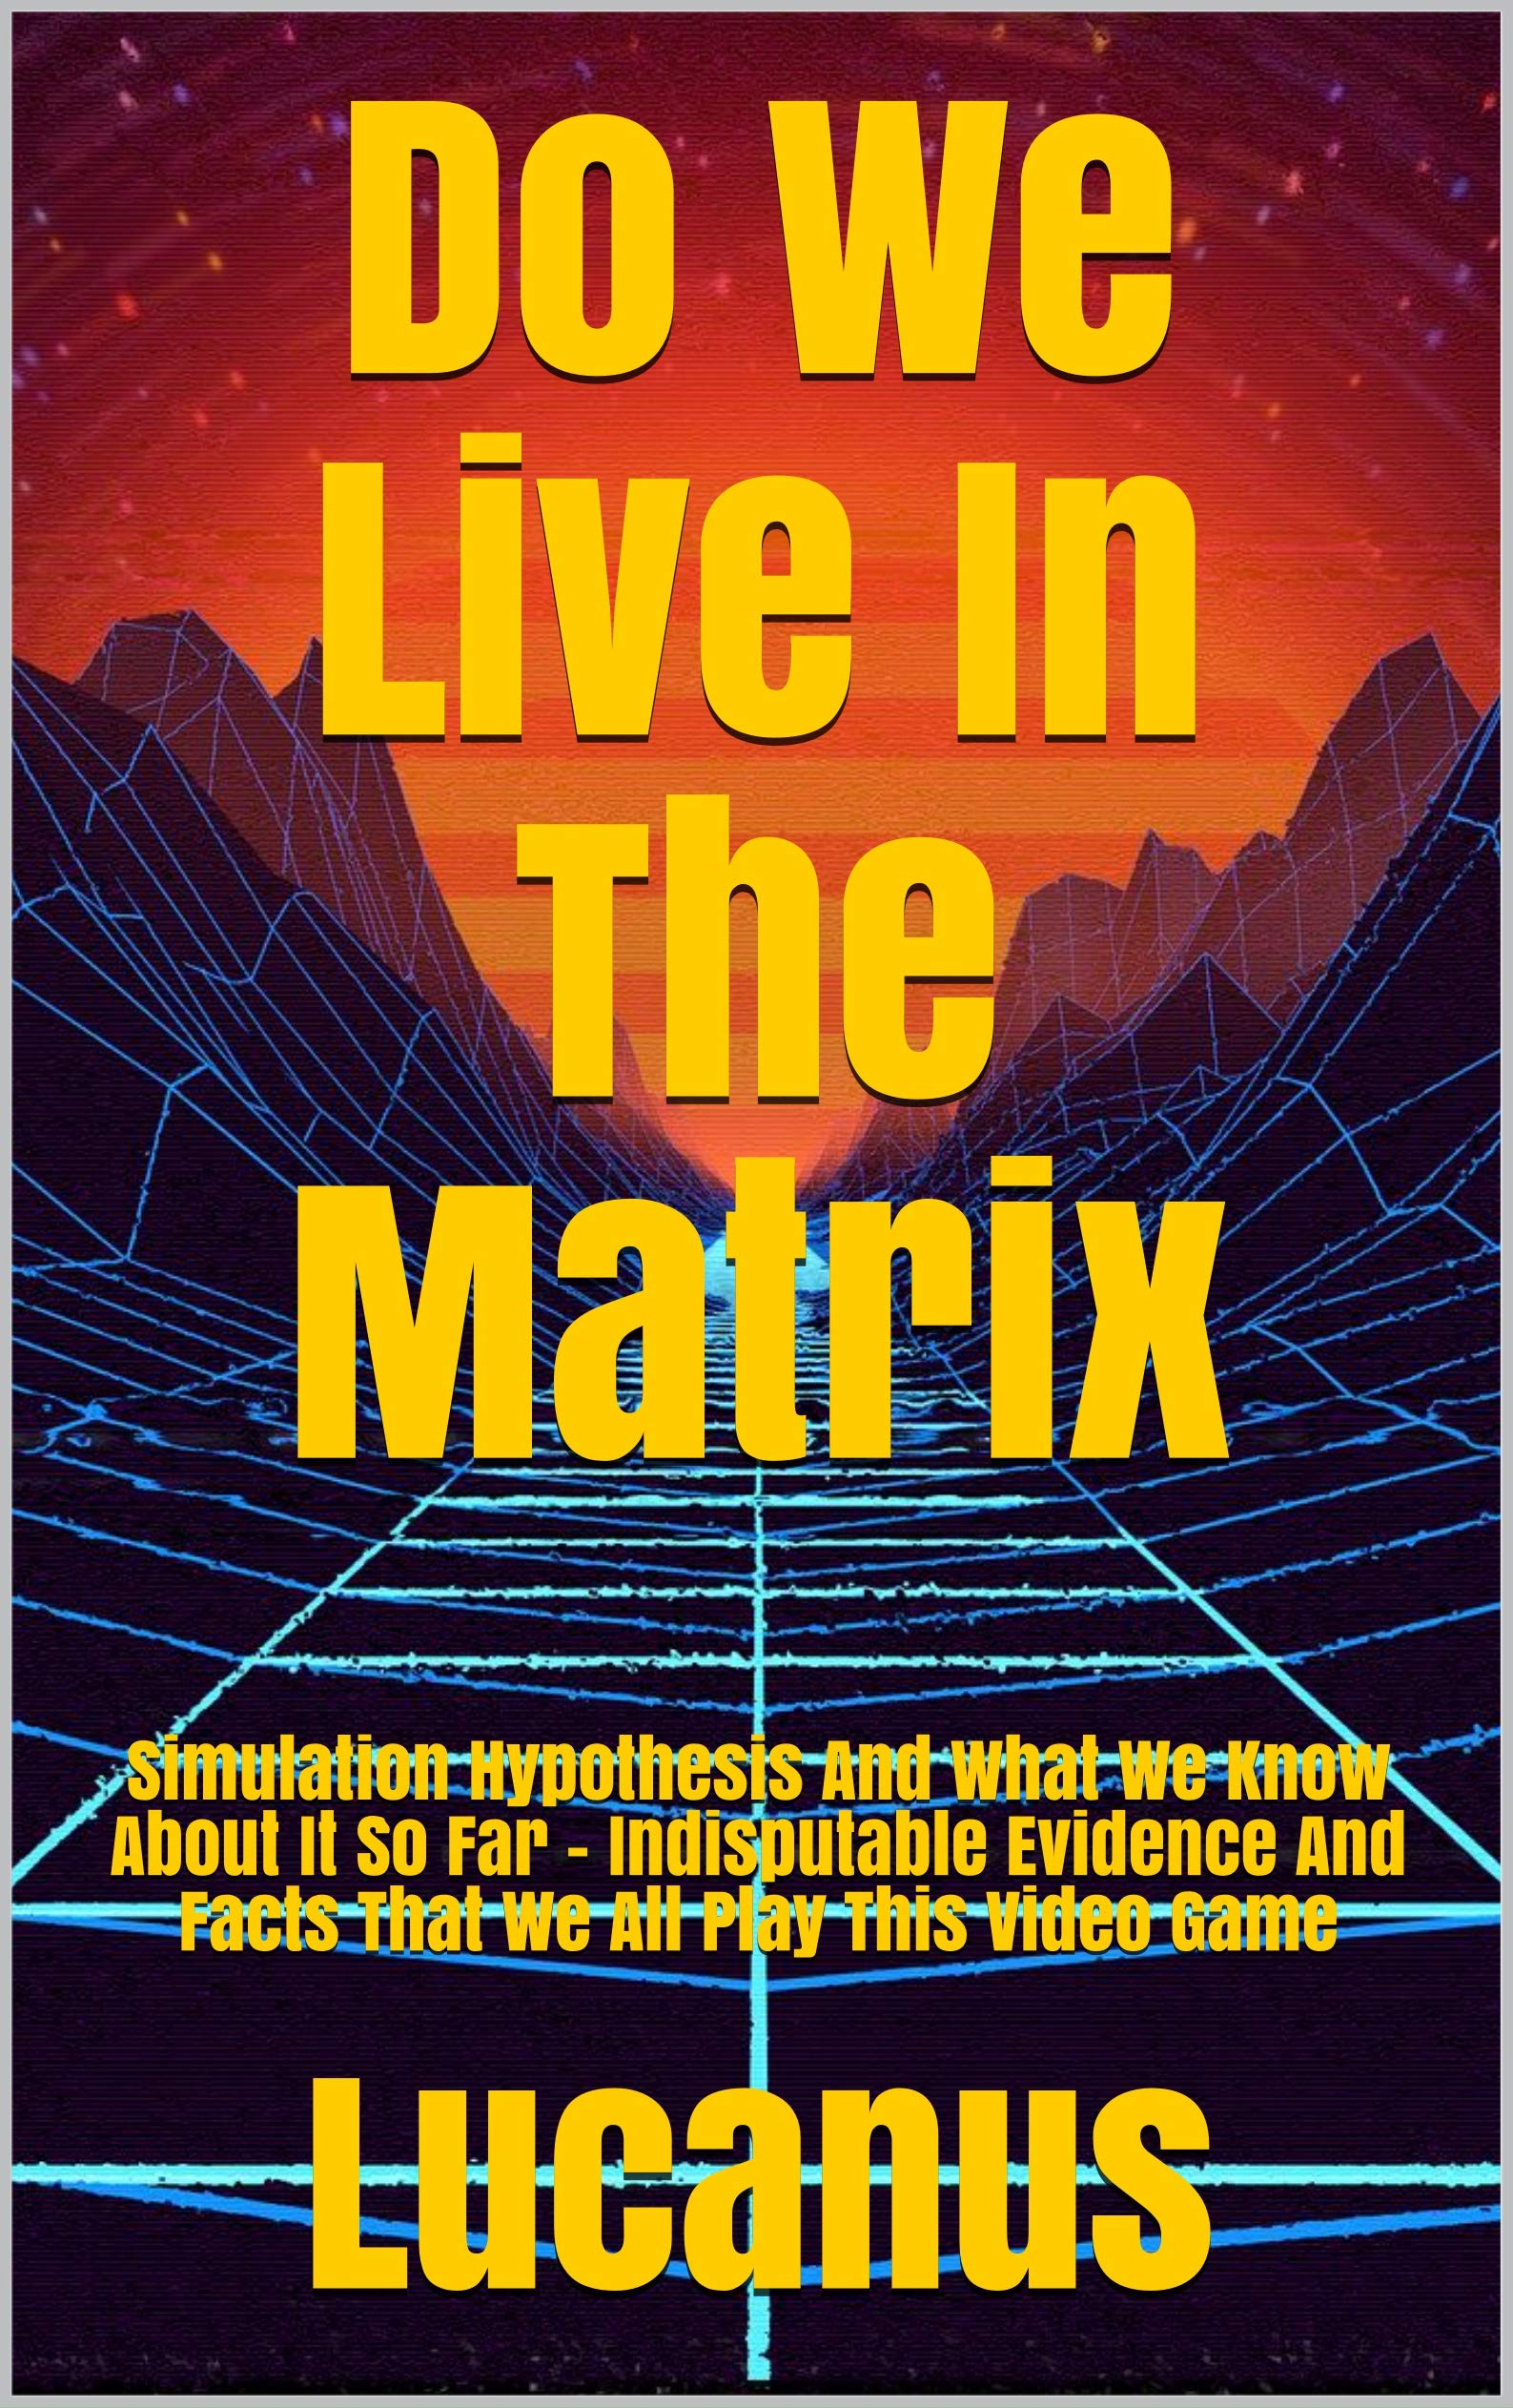 Do We Live In The Matrix: Simulation Hypothesis And What We Know About It So Far - Indisputable Evidence And Facts That We All Play This Video Game